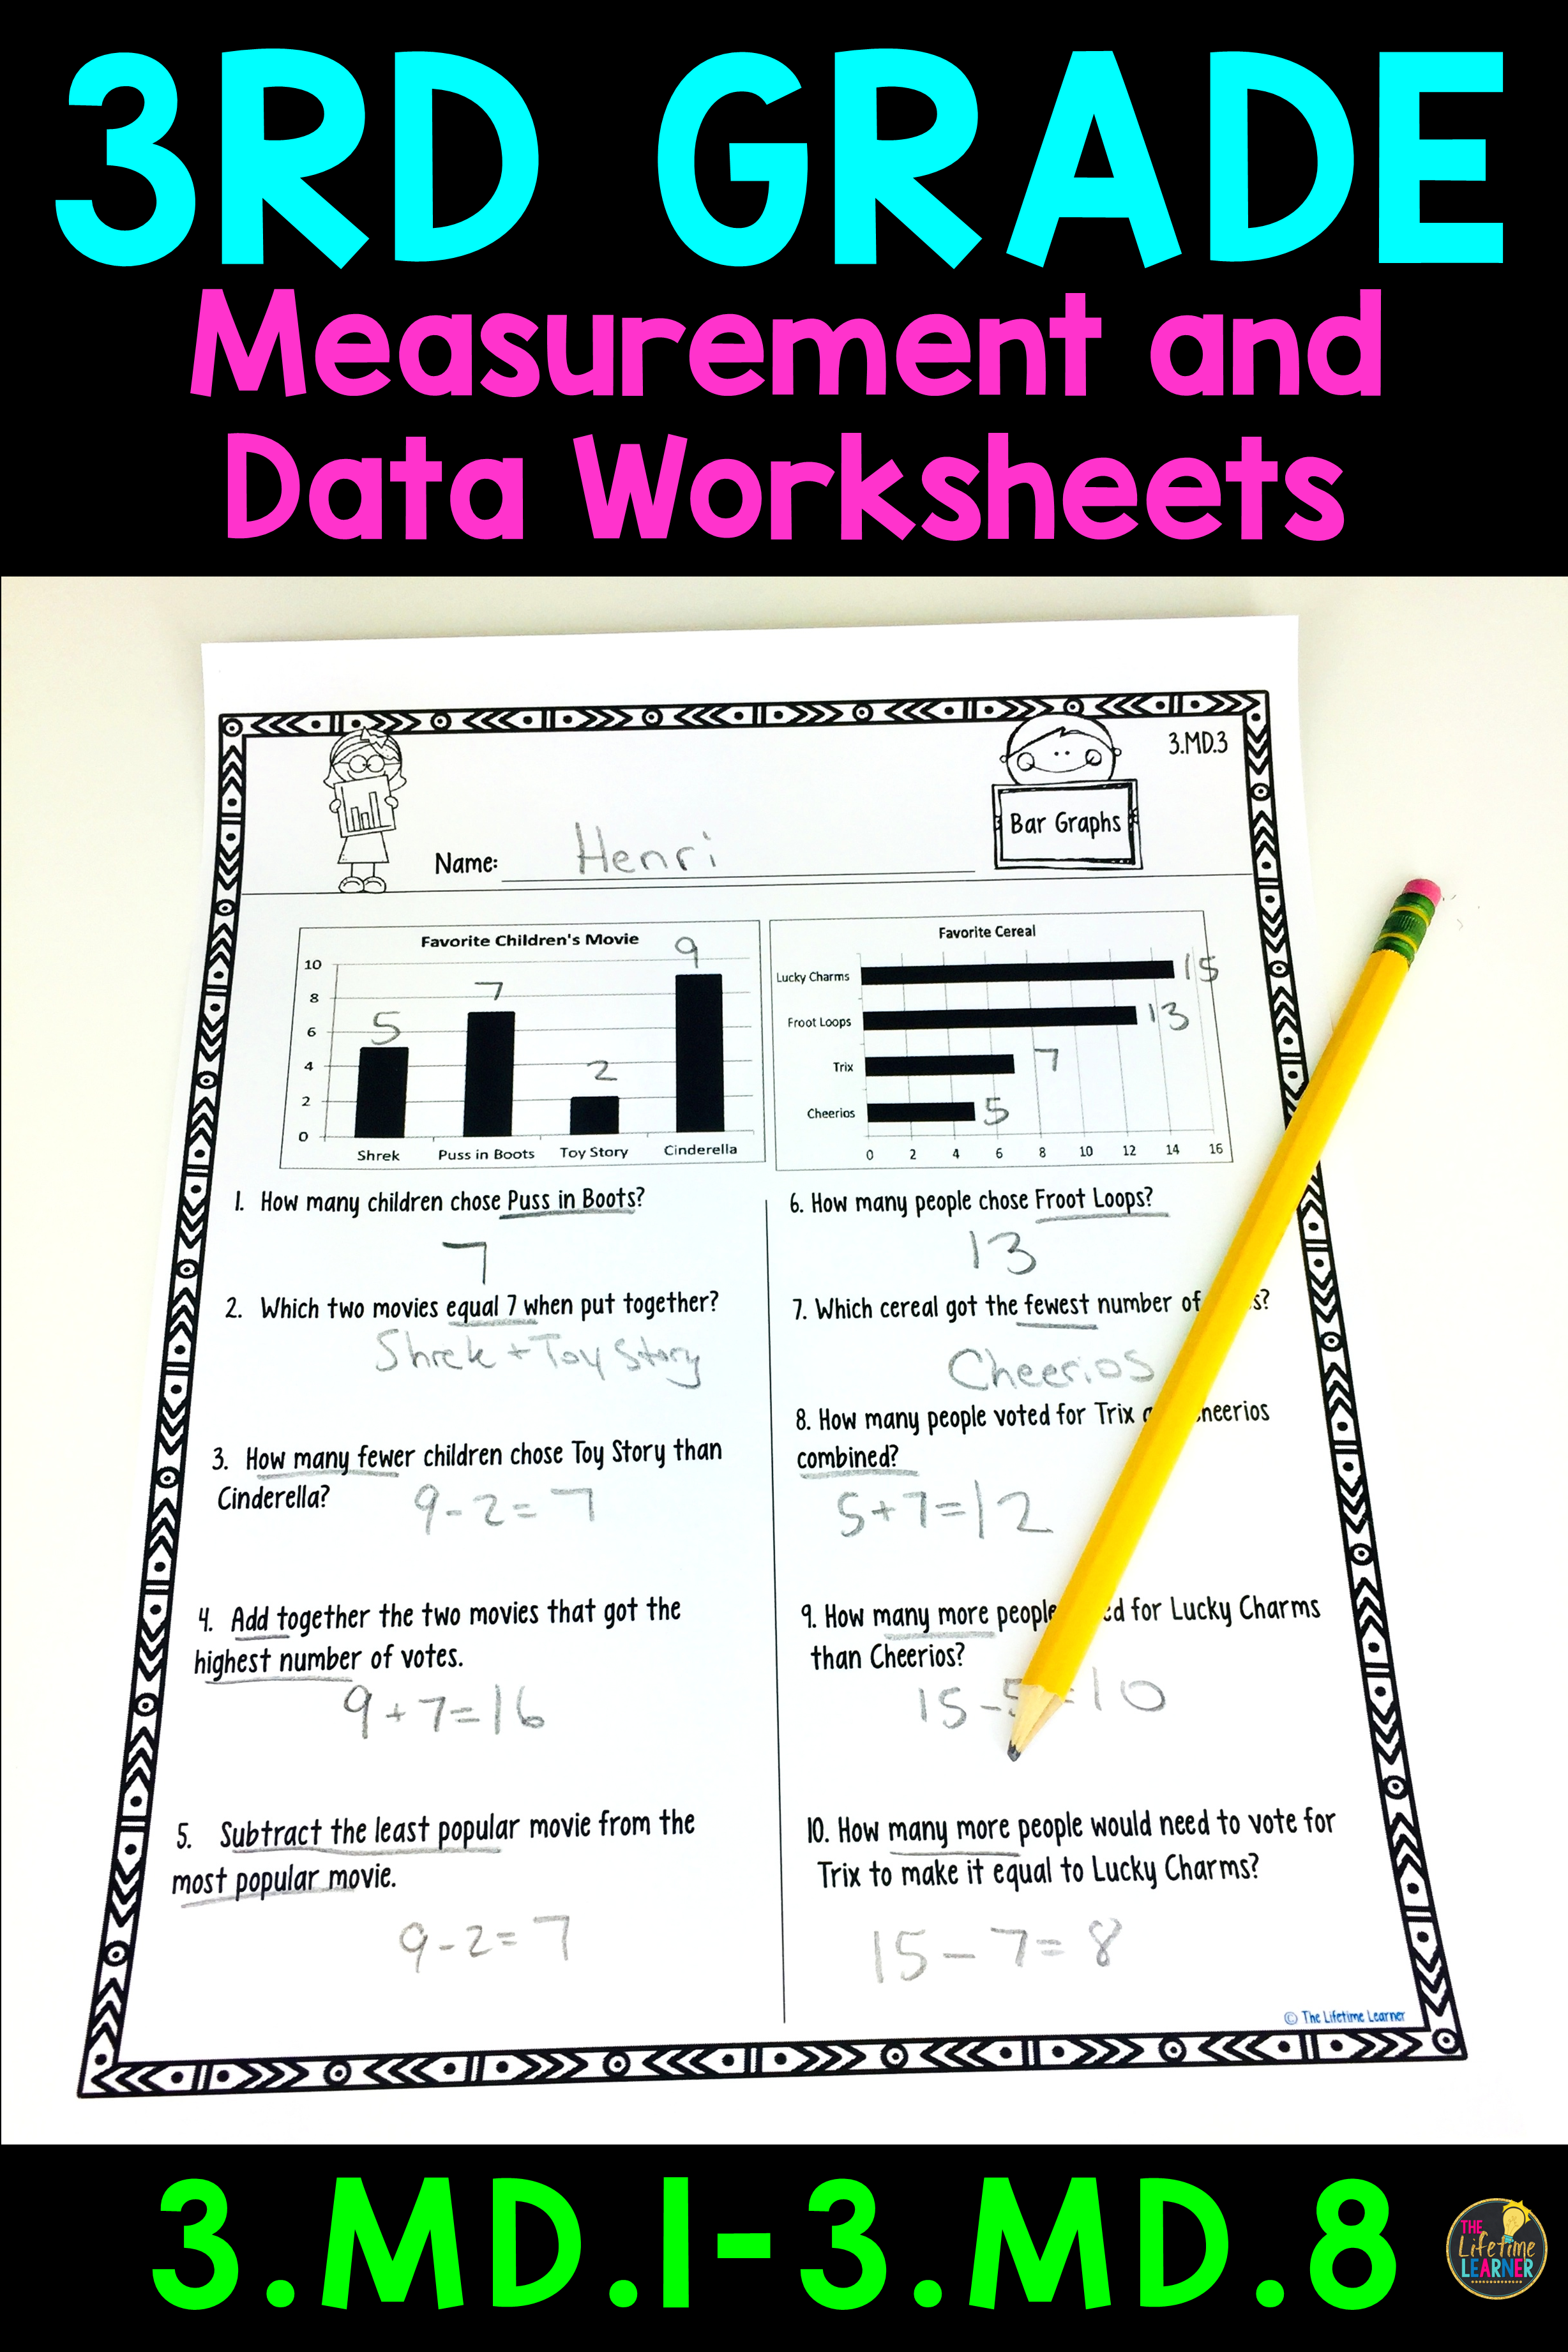 hight resolution of 3rd Grade Measurement and Data Worksheets   Measurement worksheets